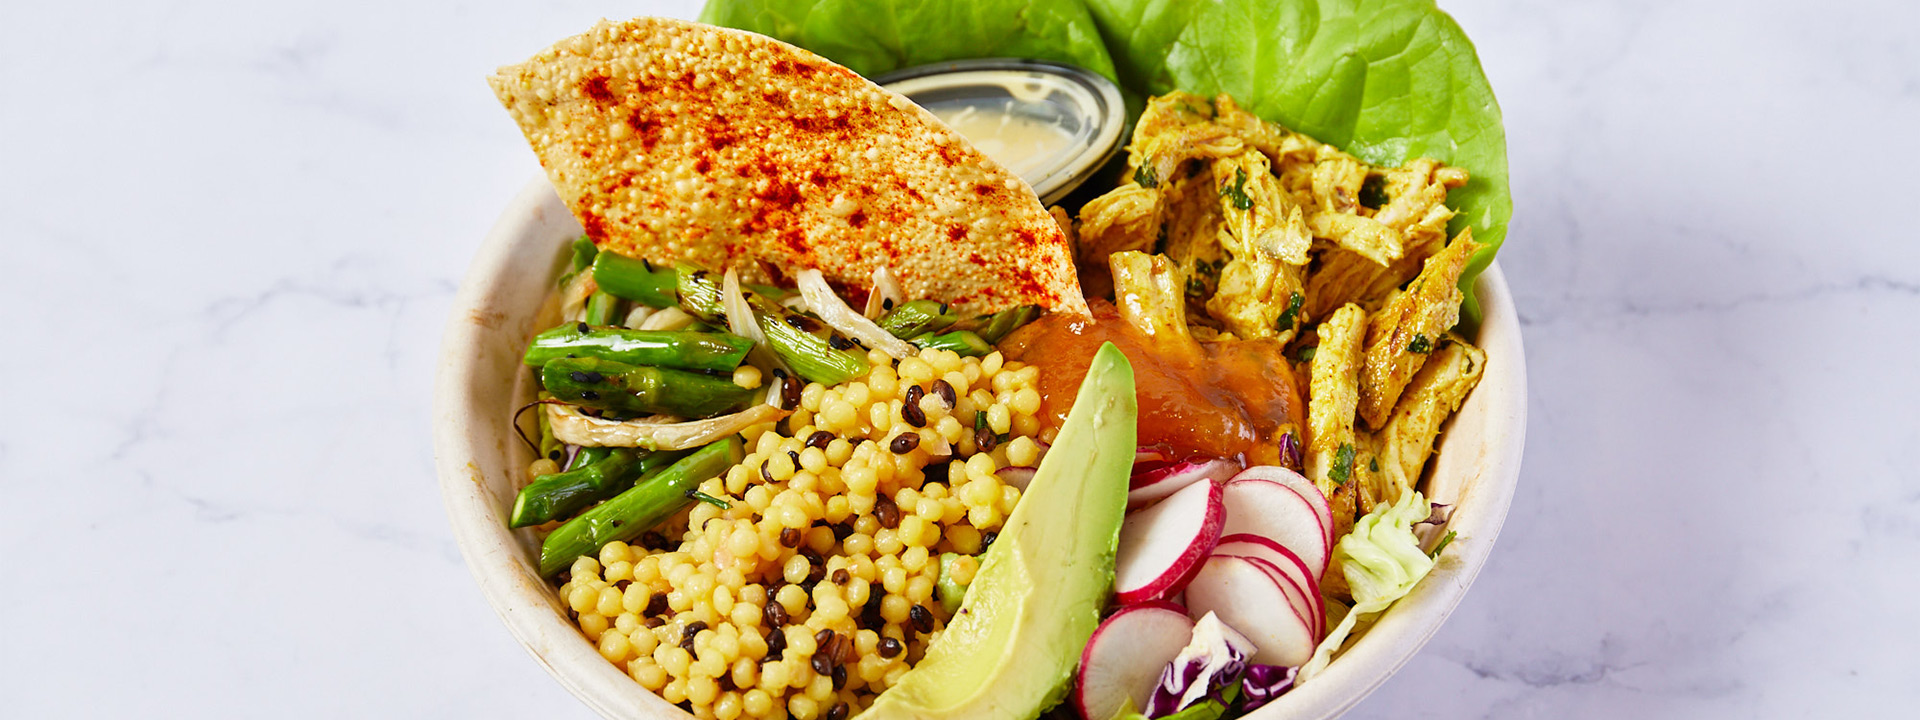 Grain bowl with chicken, avocado, radishes, and assorted vegetables